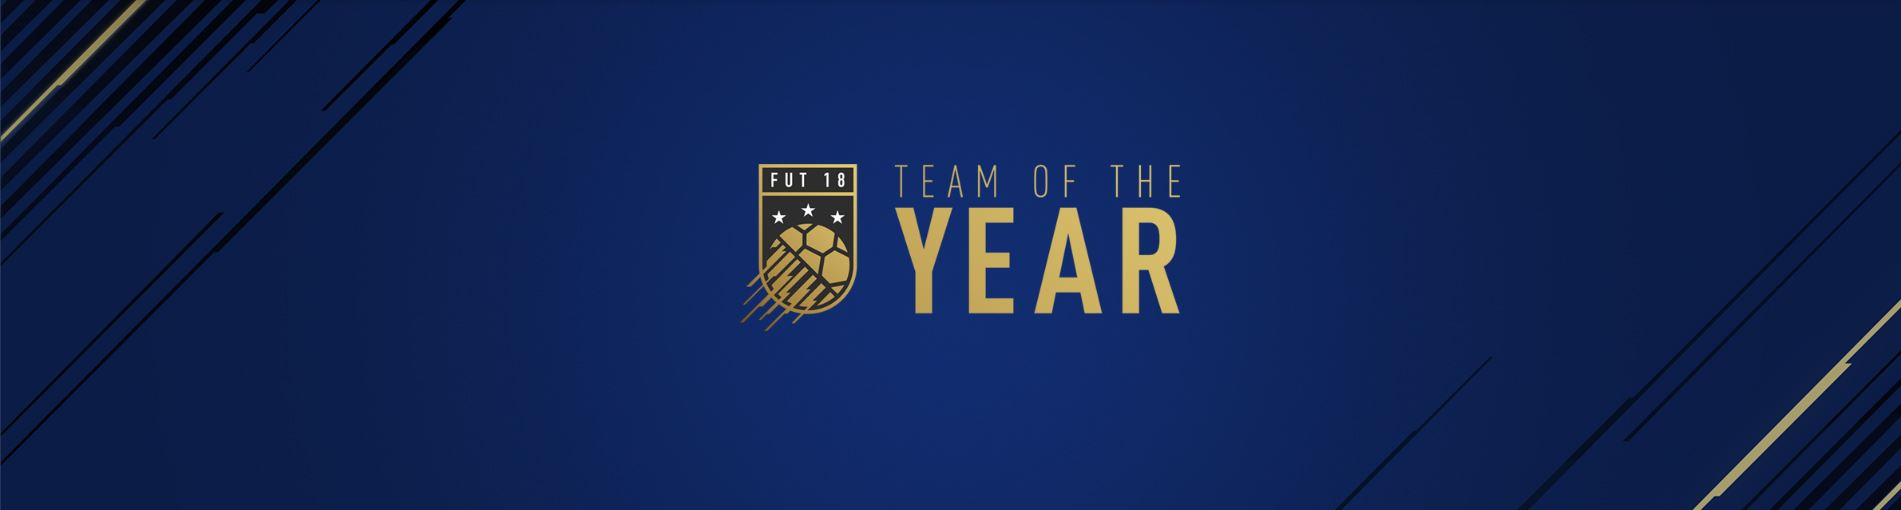 TOTY : Team Of The Year sur FIFA 18